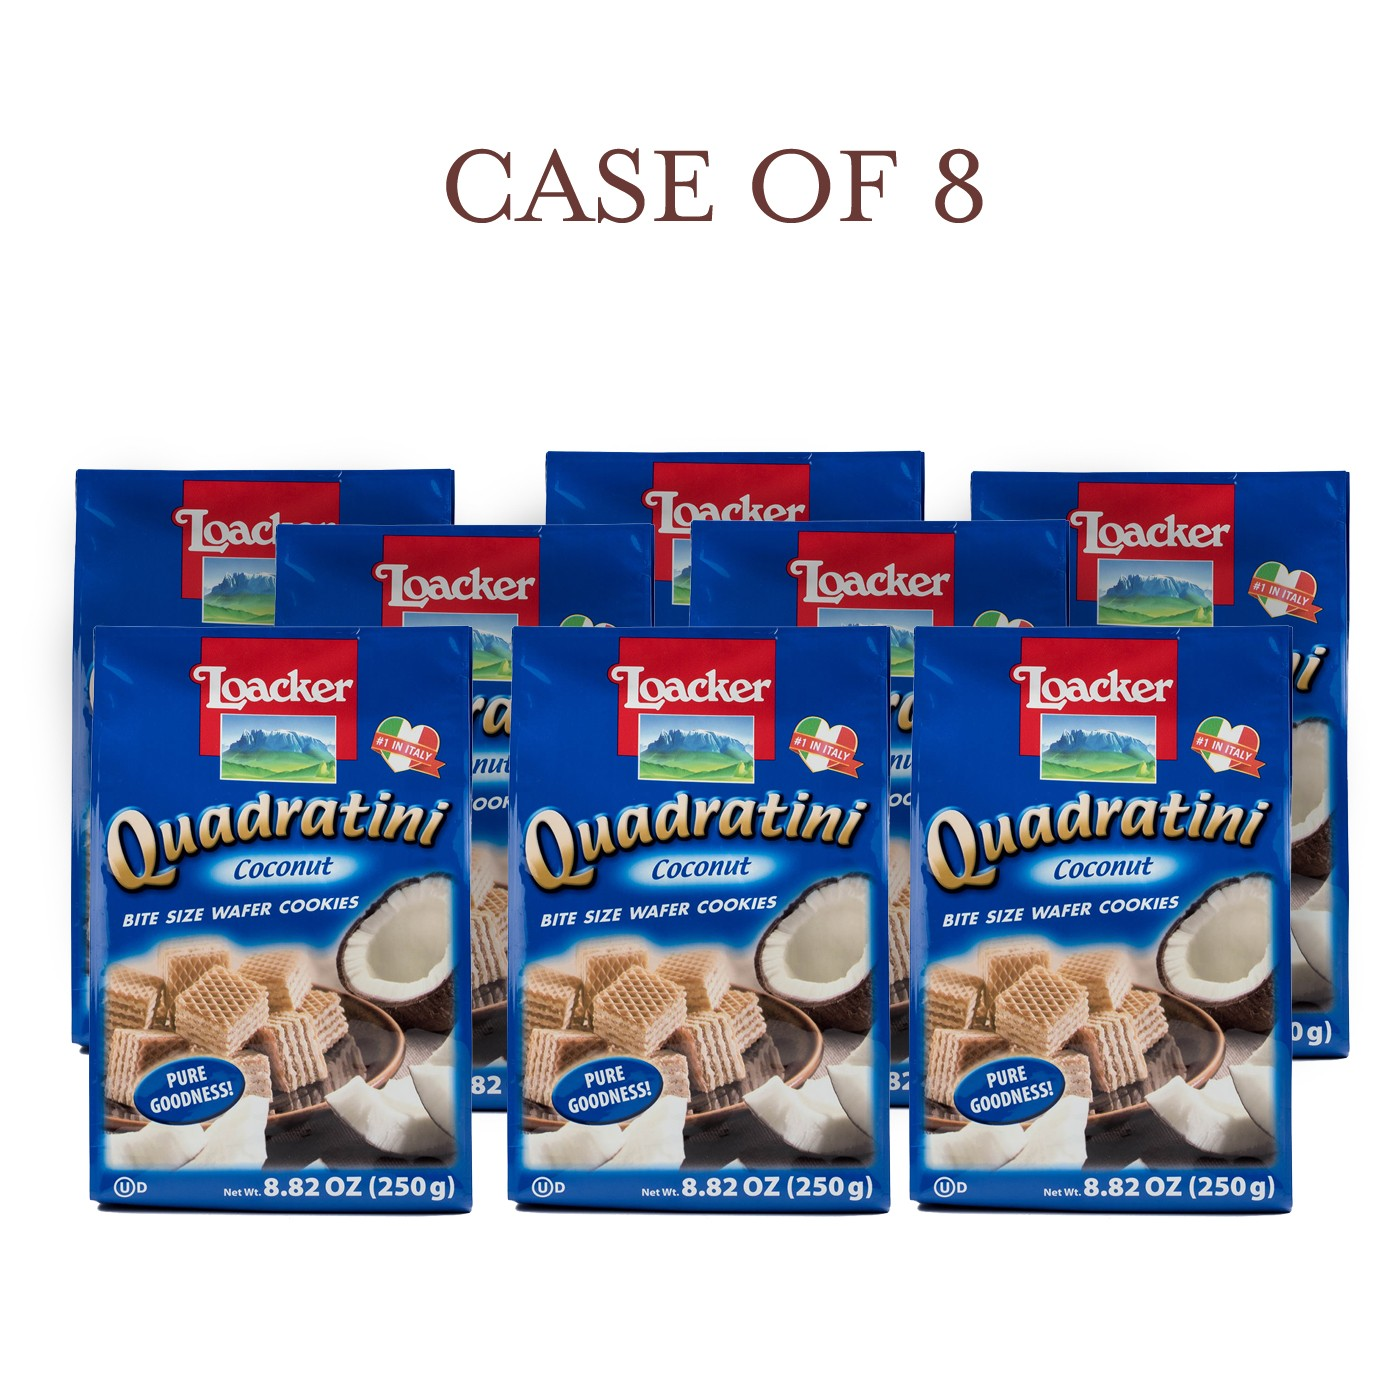 Coconut Quadratini - Case of 8